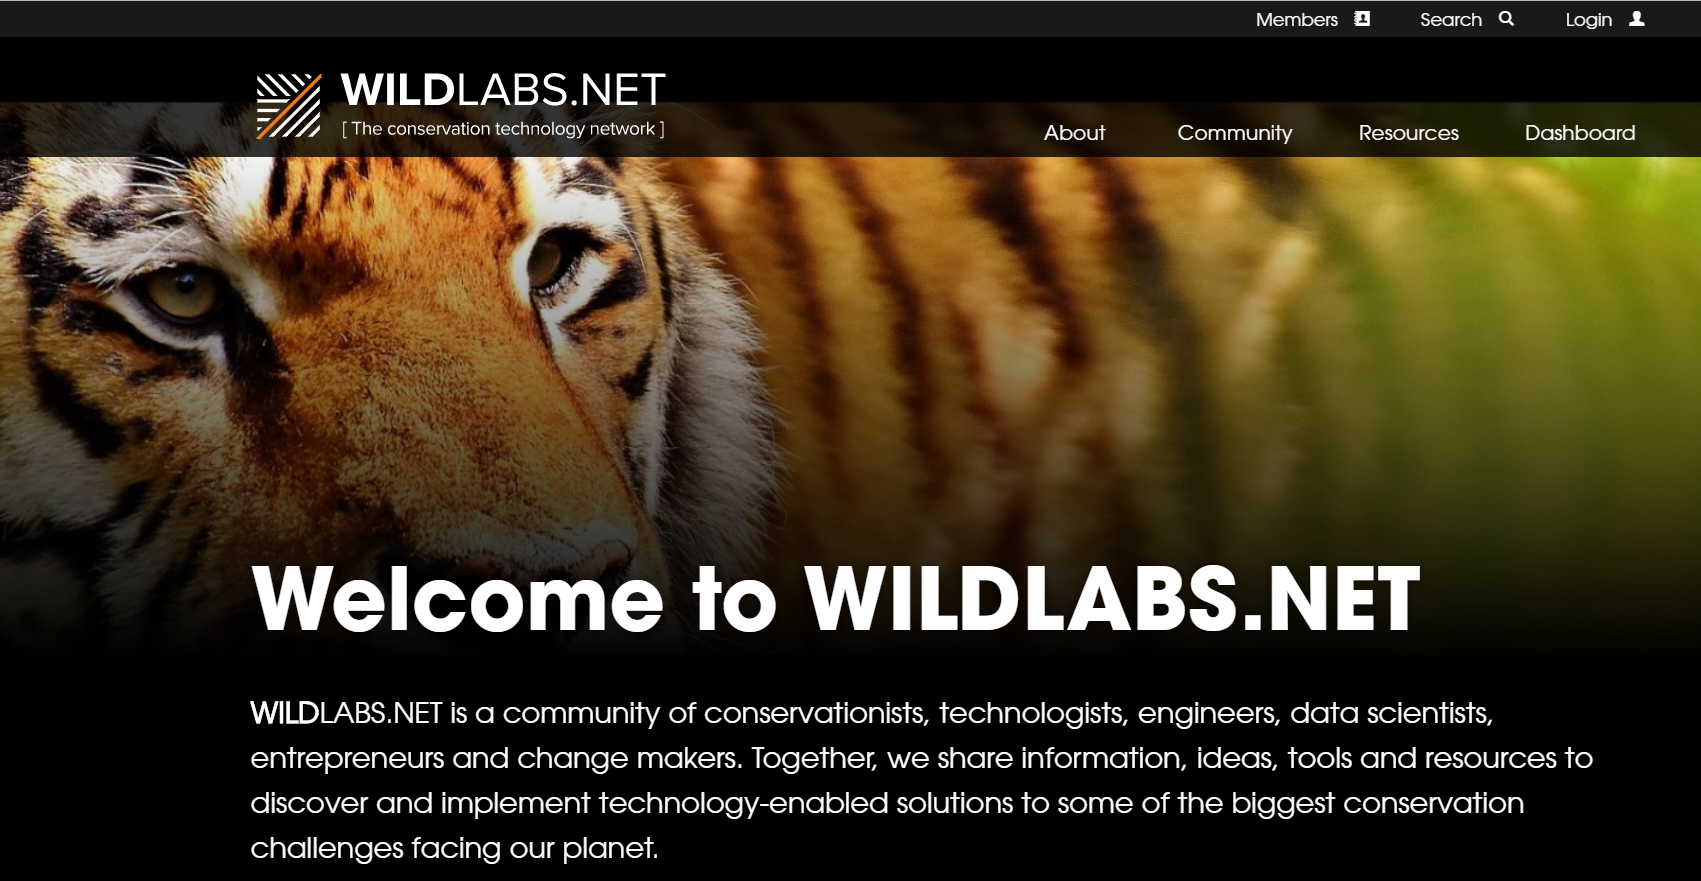 A [WildLabs.Net (https://www.wildlabs.net/) website screenshot